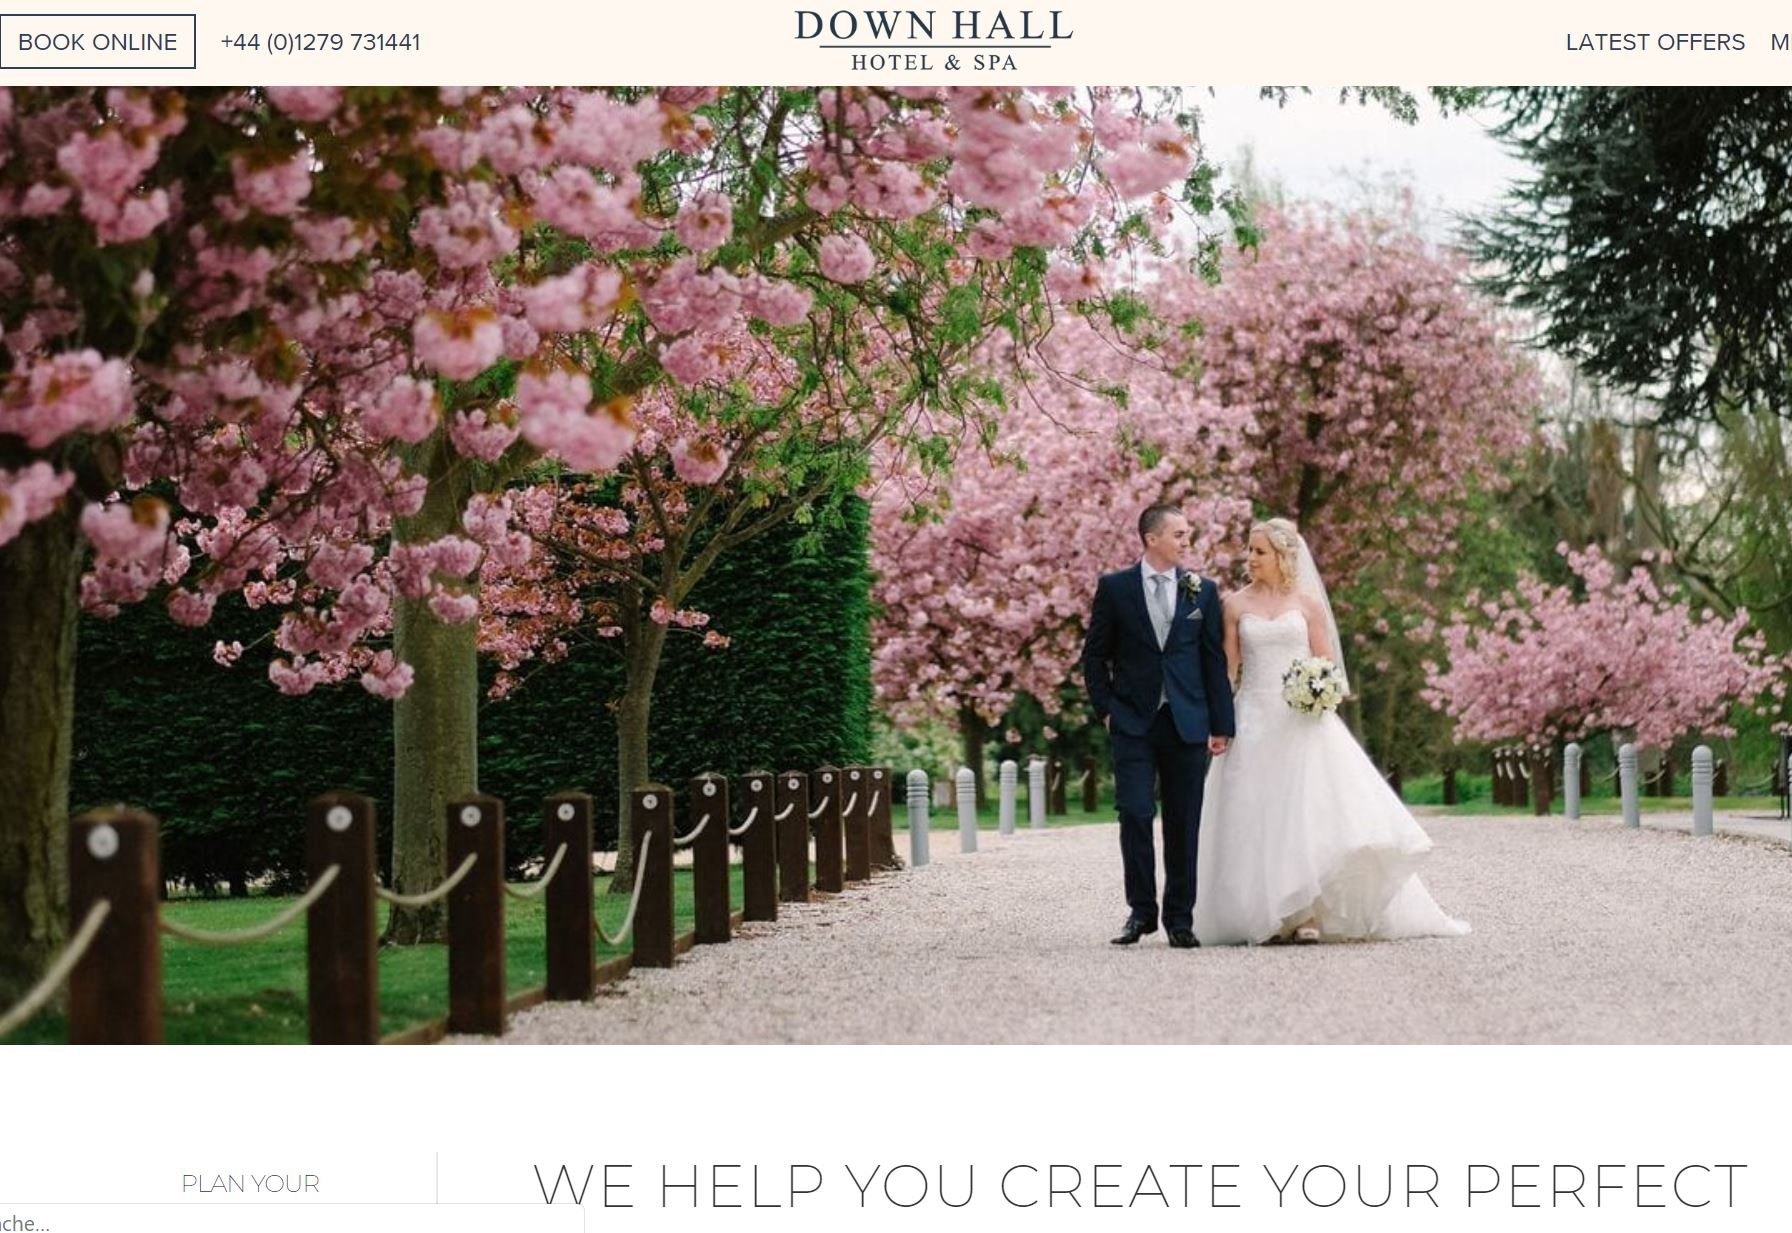 Down Hall - Situated in the breathtaking beauty of the Hertfordshire/Essex countryside, providing an exquisite backdrop for your special day, both as a reception venue and as a Civil ceremony venue.